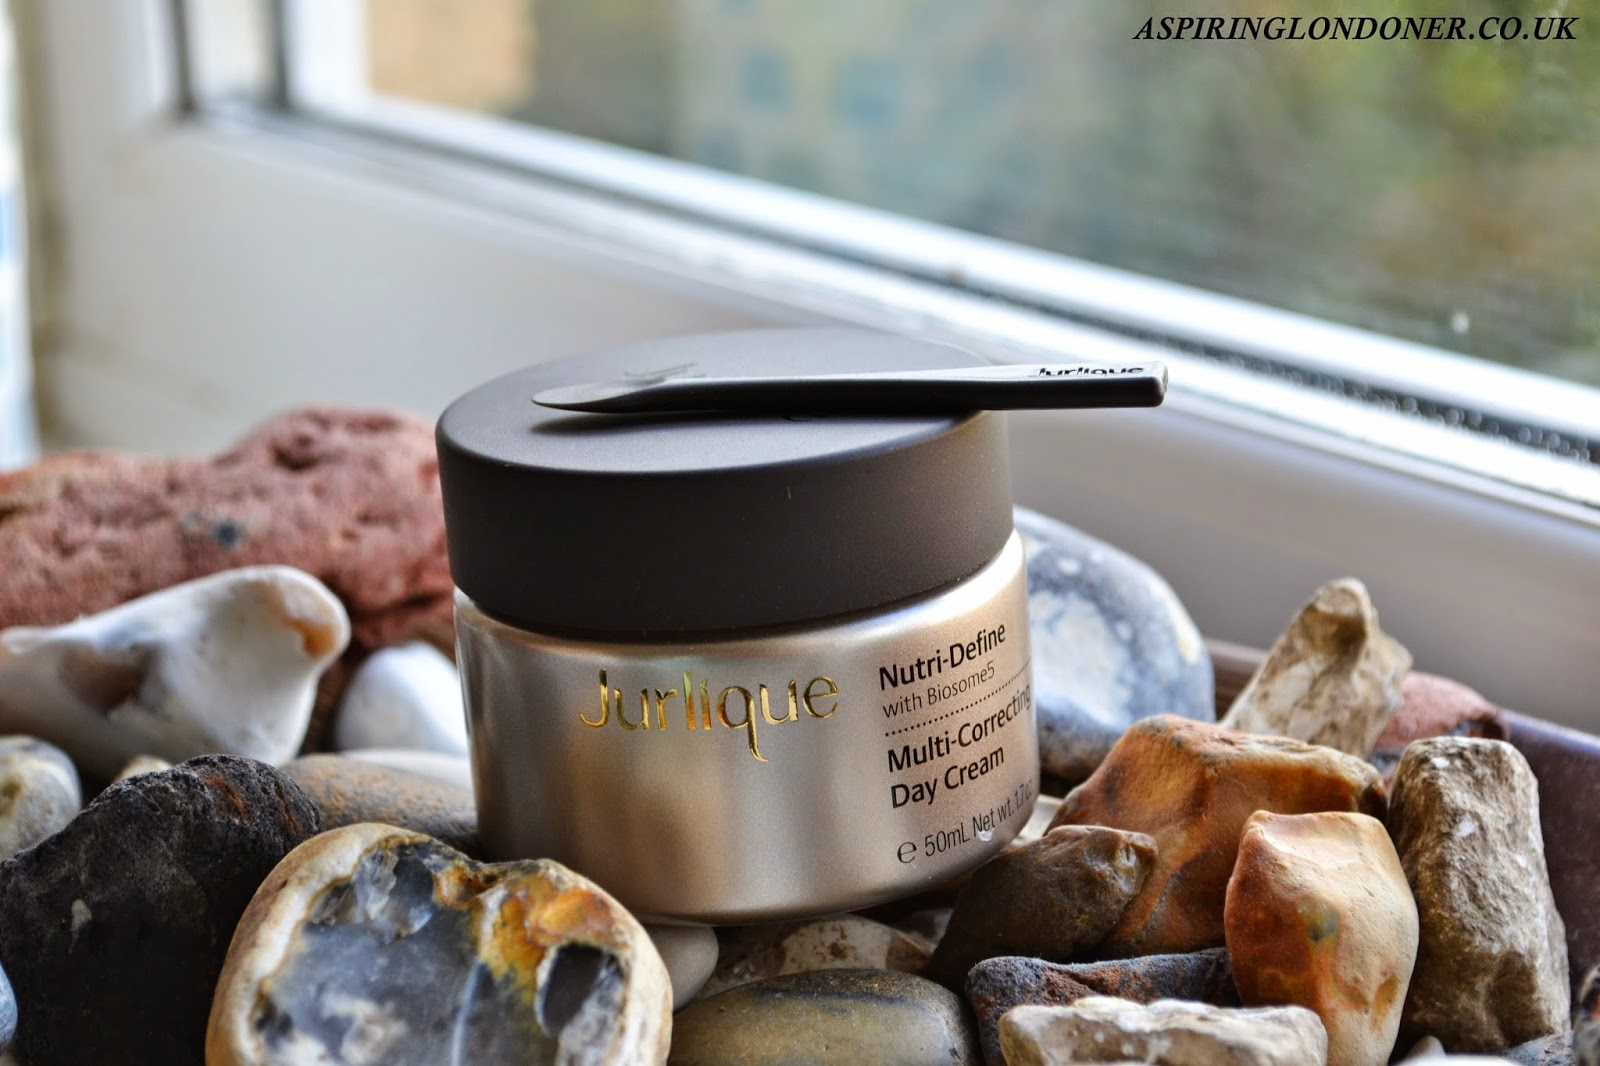 Jurlique Nutri-Define Multi Correcting Day Cream Review - Aspiring Londoner